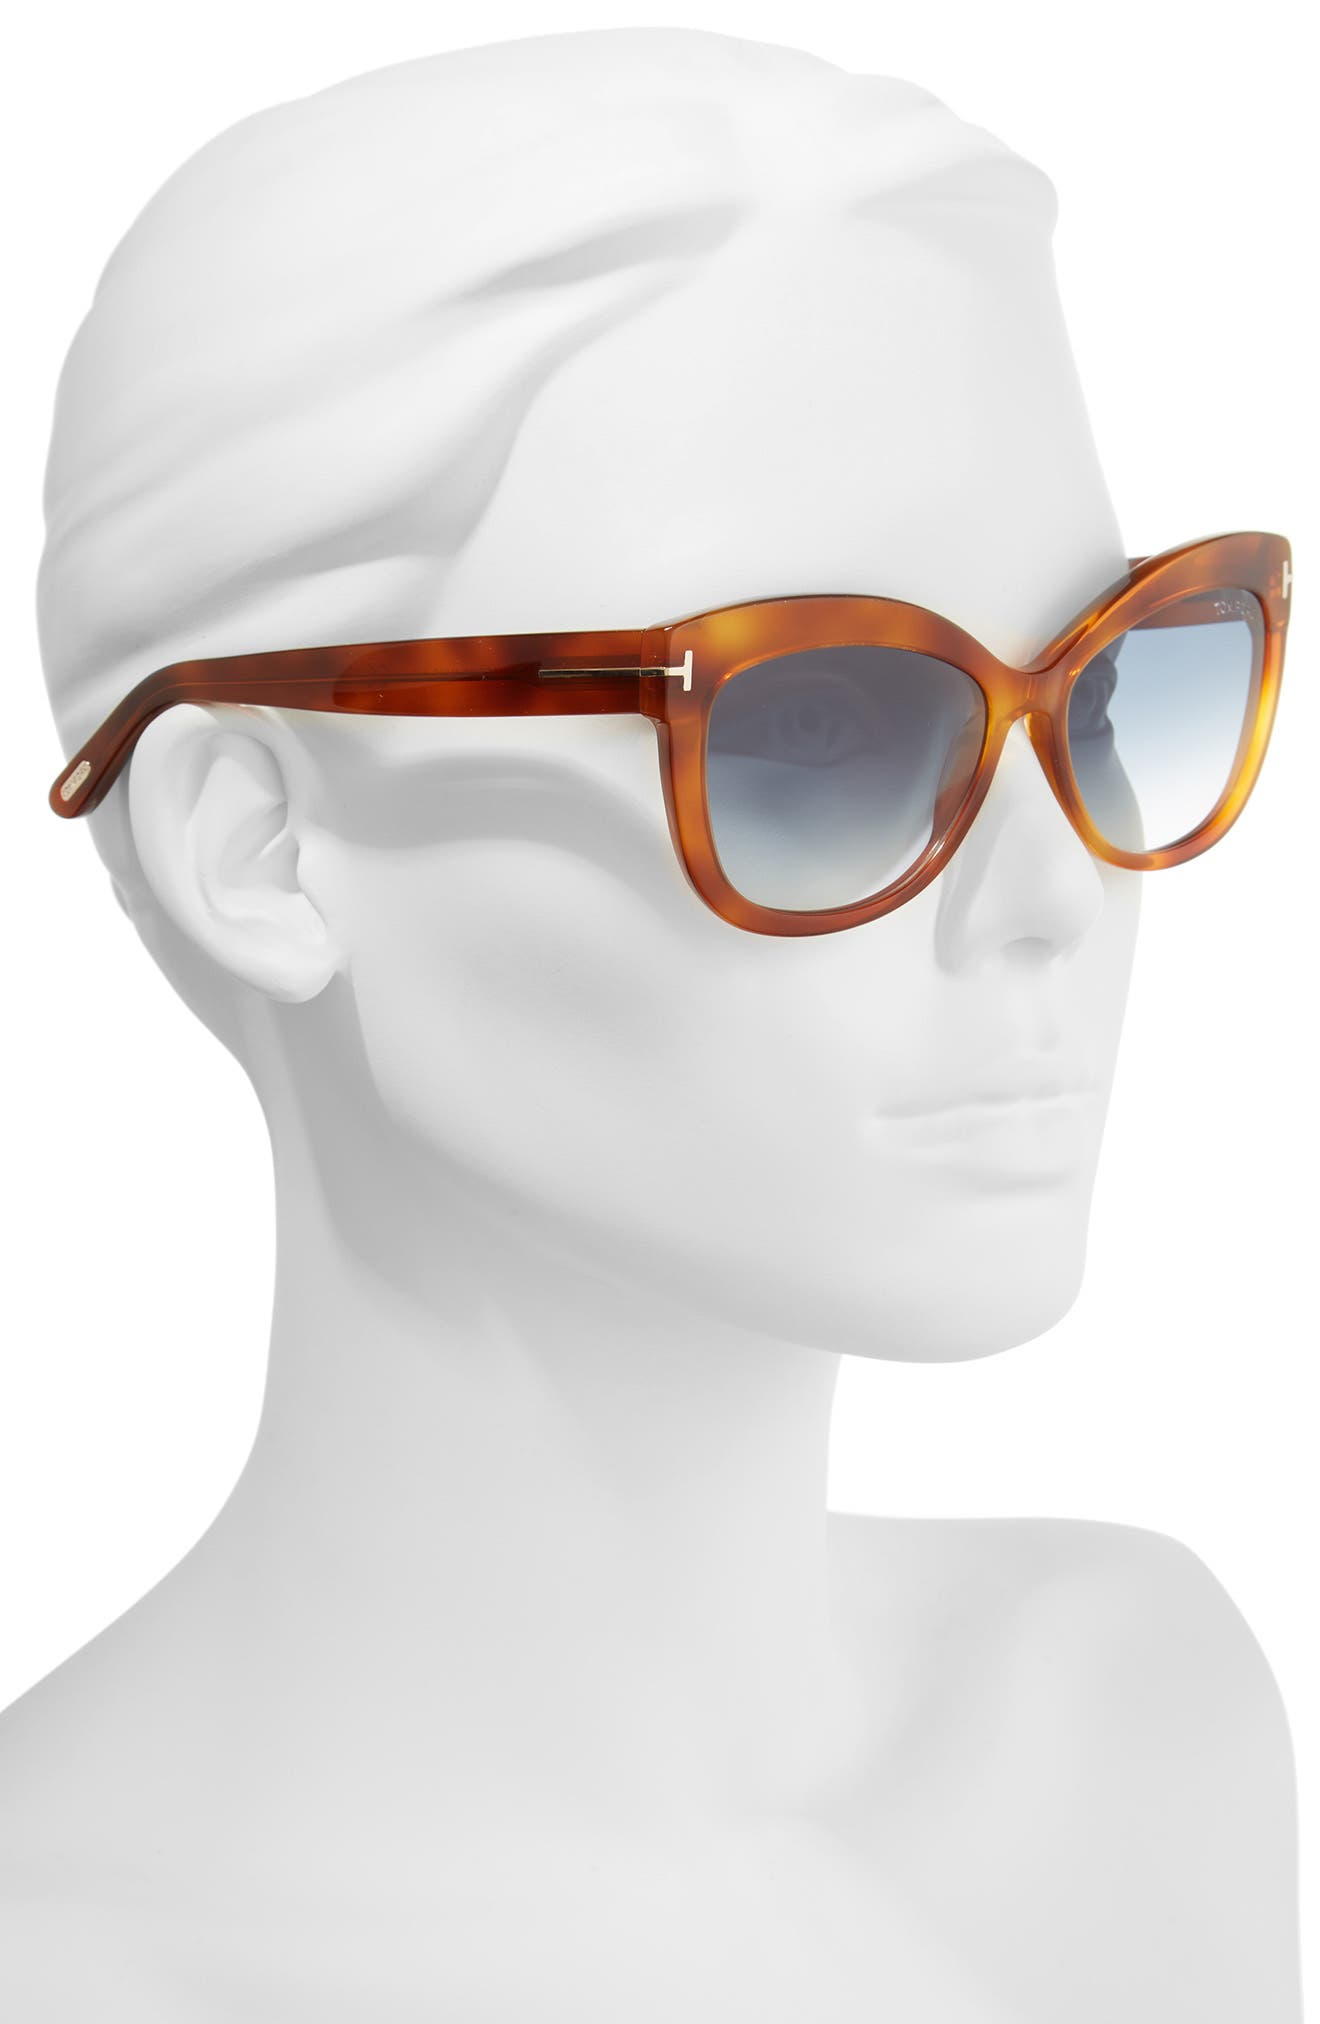 Alistair 56mm Gradient Sunglasses,                             Alternate thumbnail 2, color,                             Blonde Havana / Gradient Blue